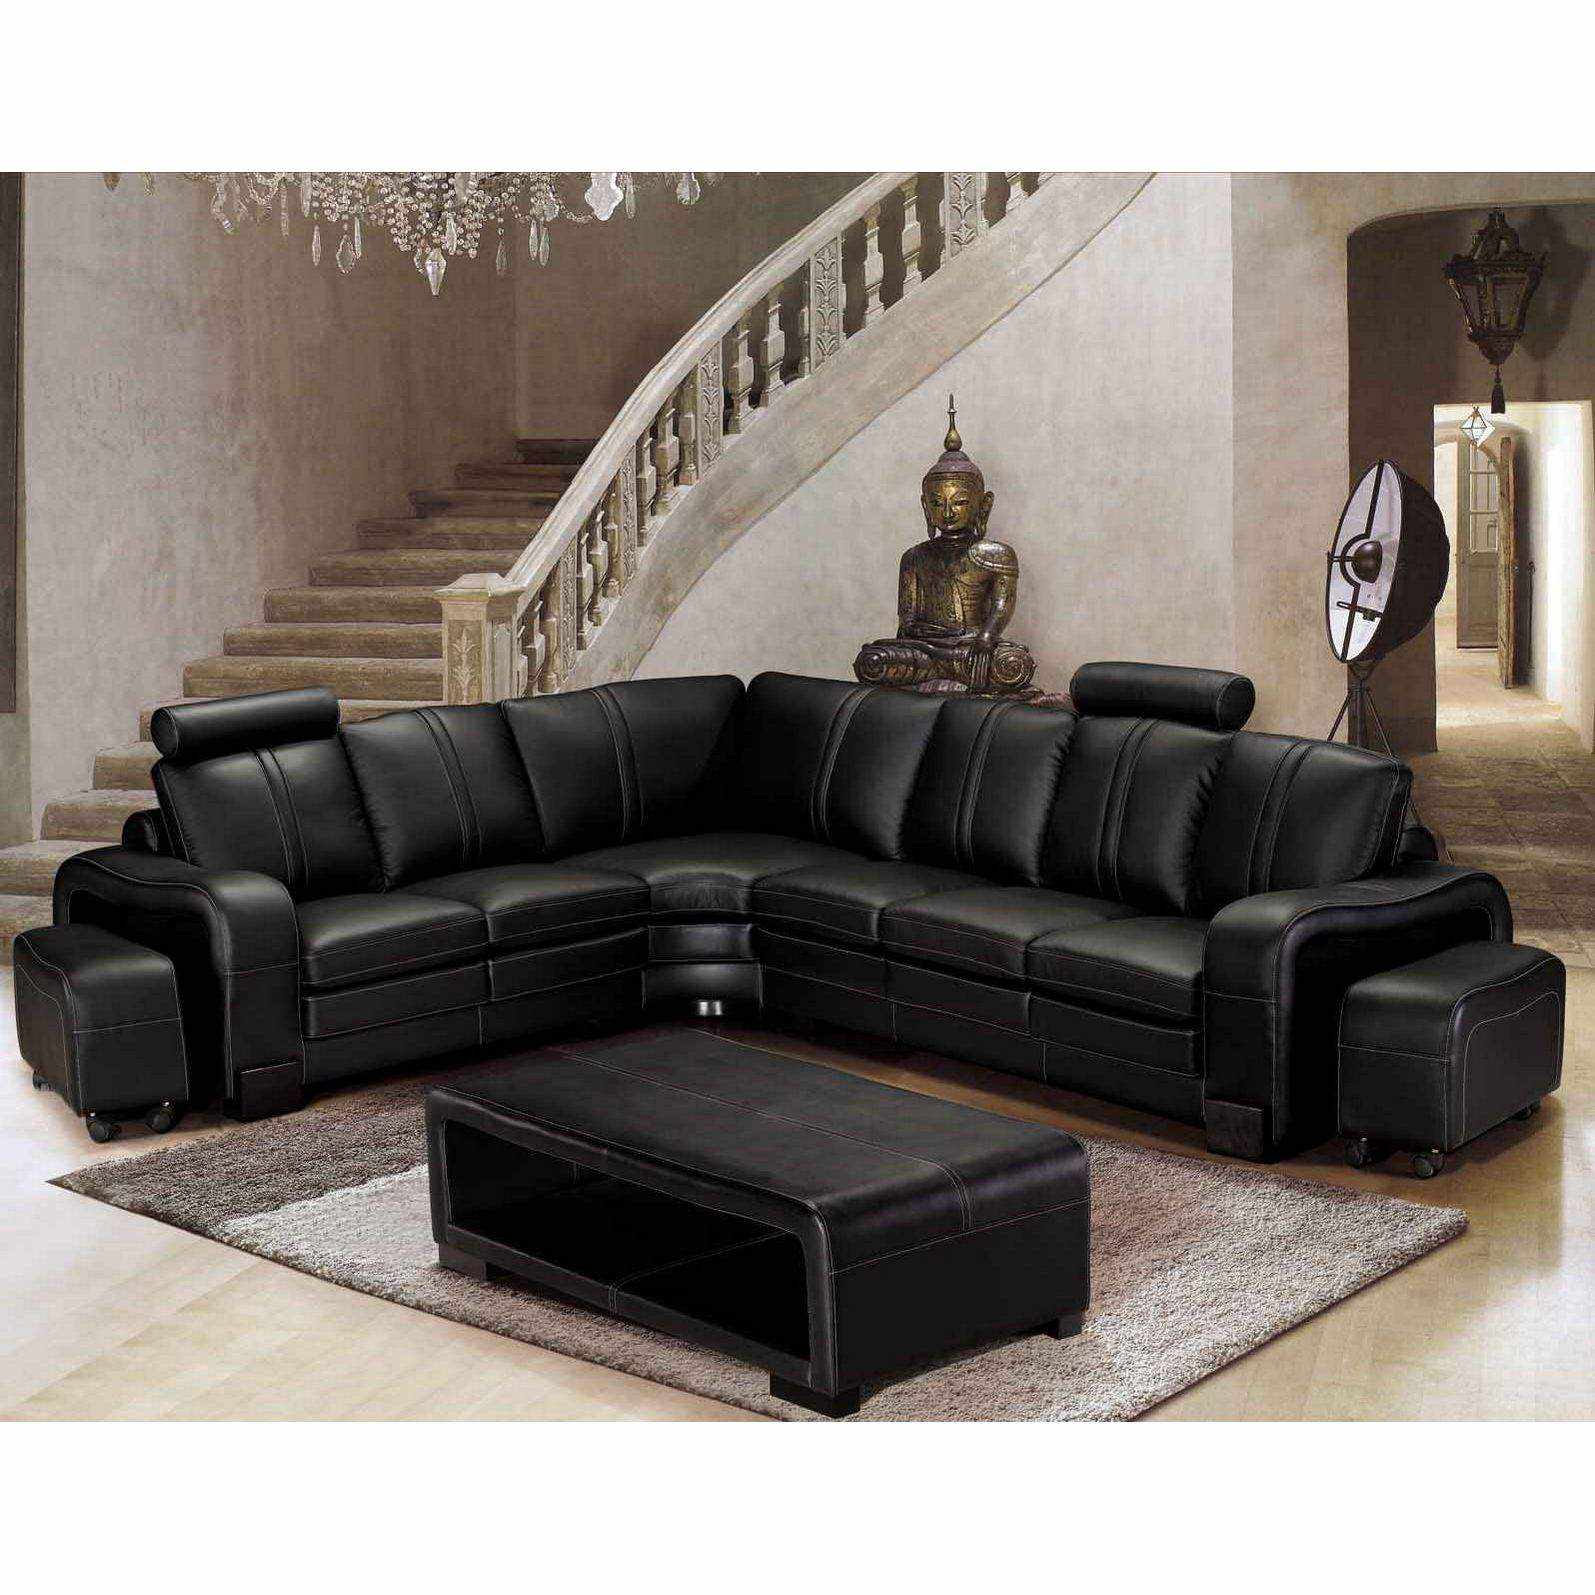 deco in paris canape d angle en cuir noir avec tetieres relax havane angle gauche can. Black Bedroom Furniture Sets. Home Design Ideas